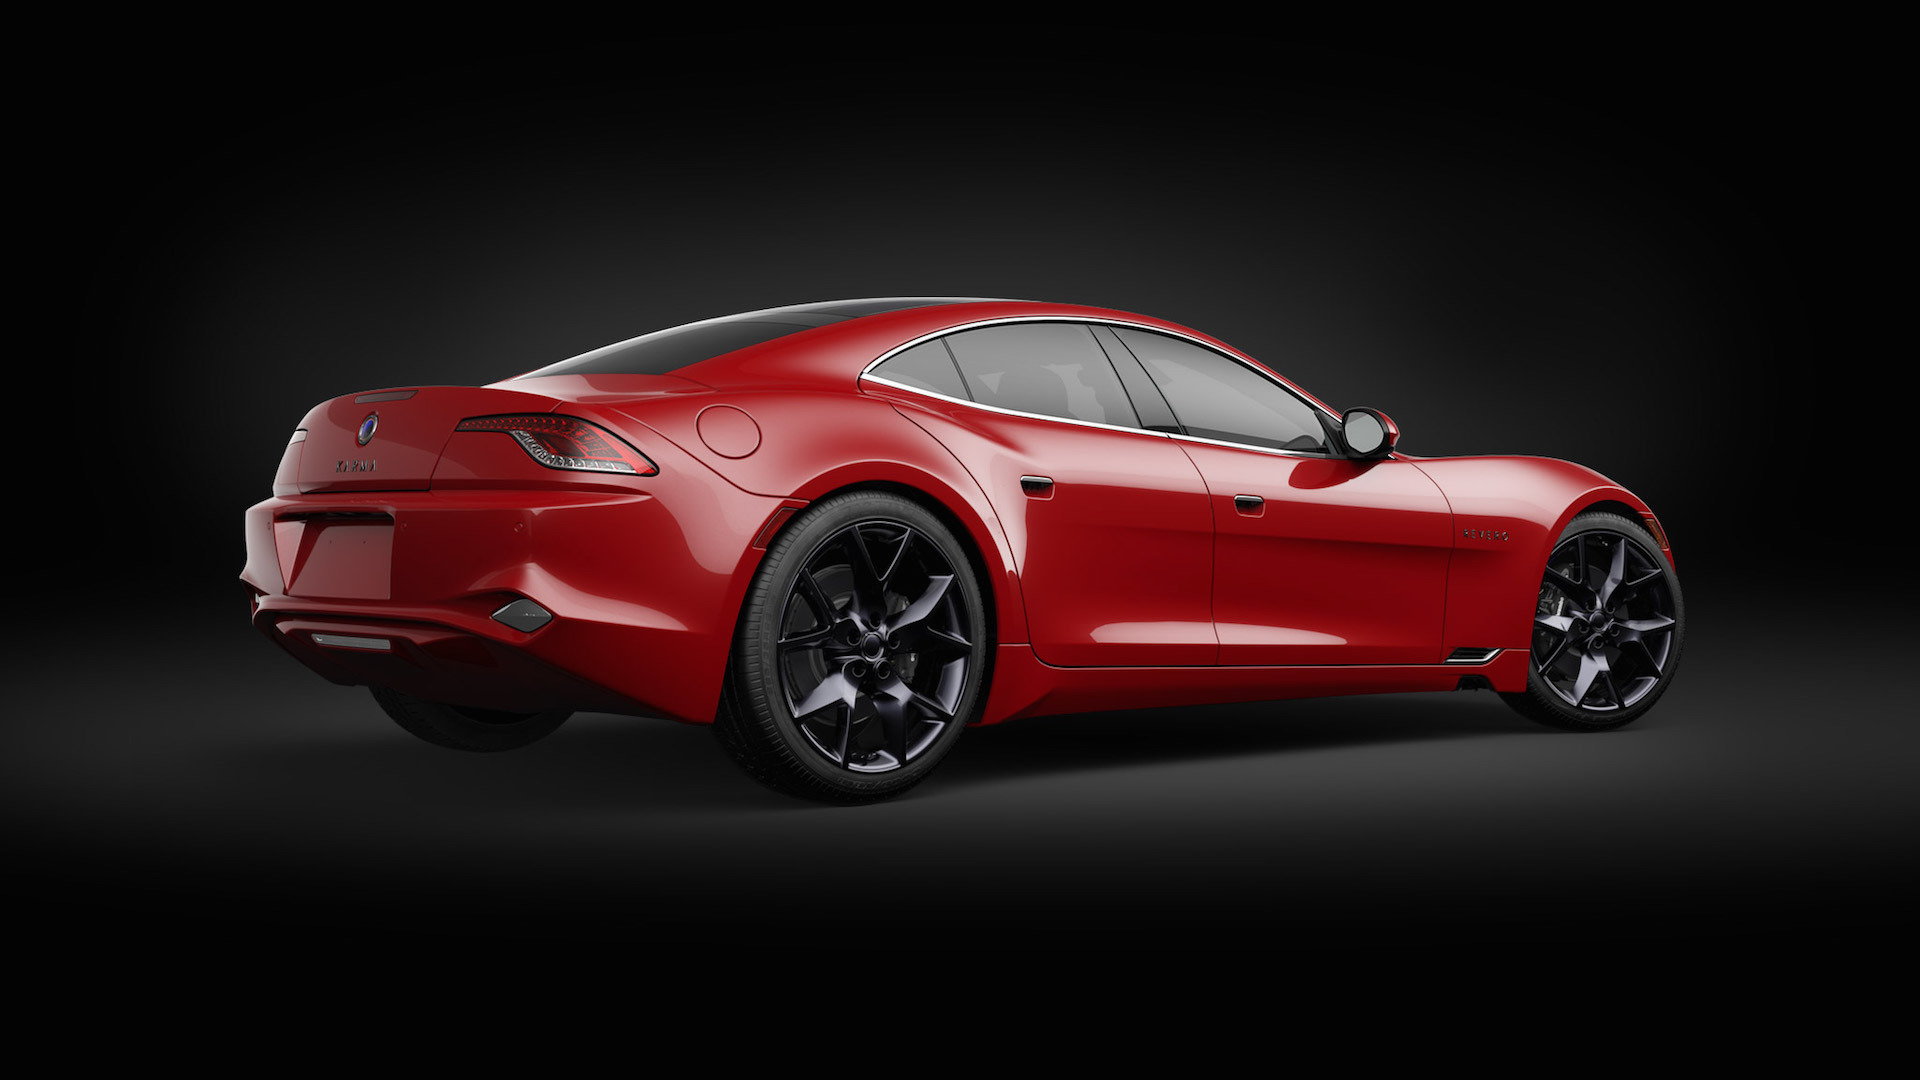 The Most Expensive Karma Revero Costs $139,900